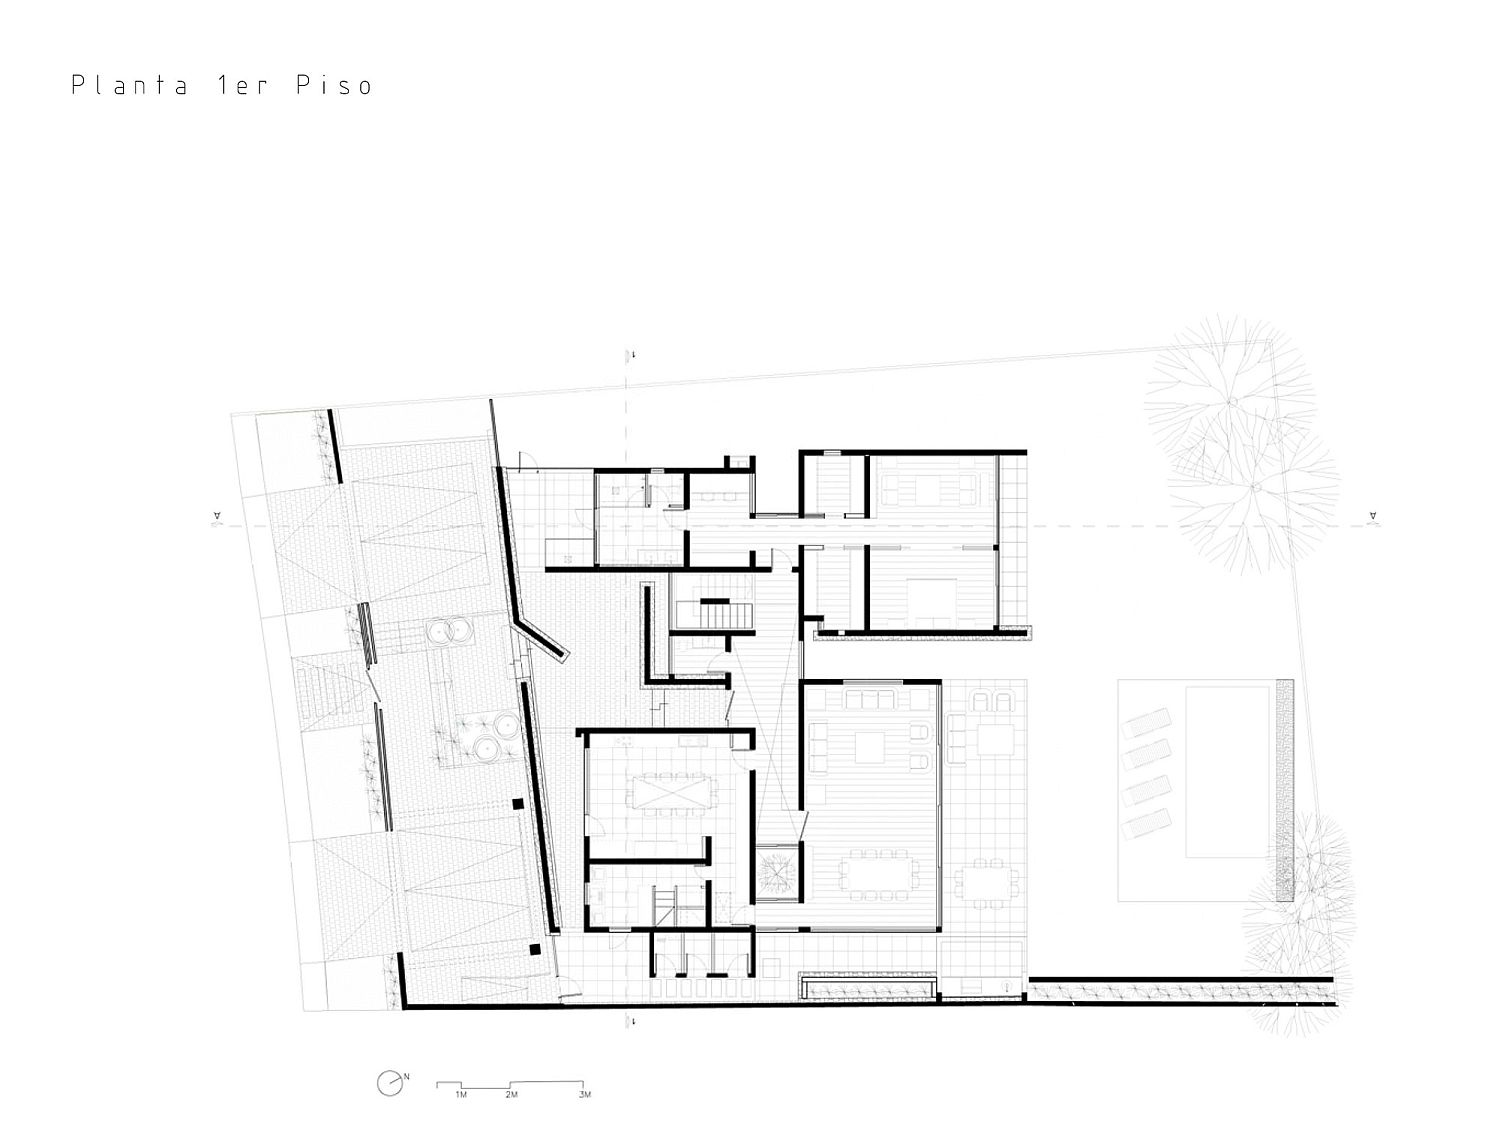 Floor plan of Cerro la Cruz House in Lo Barnechea, Chile